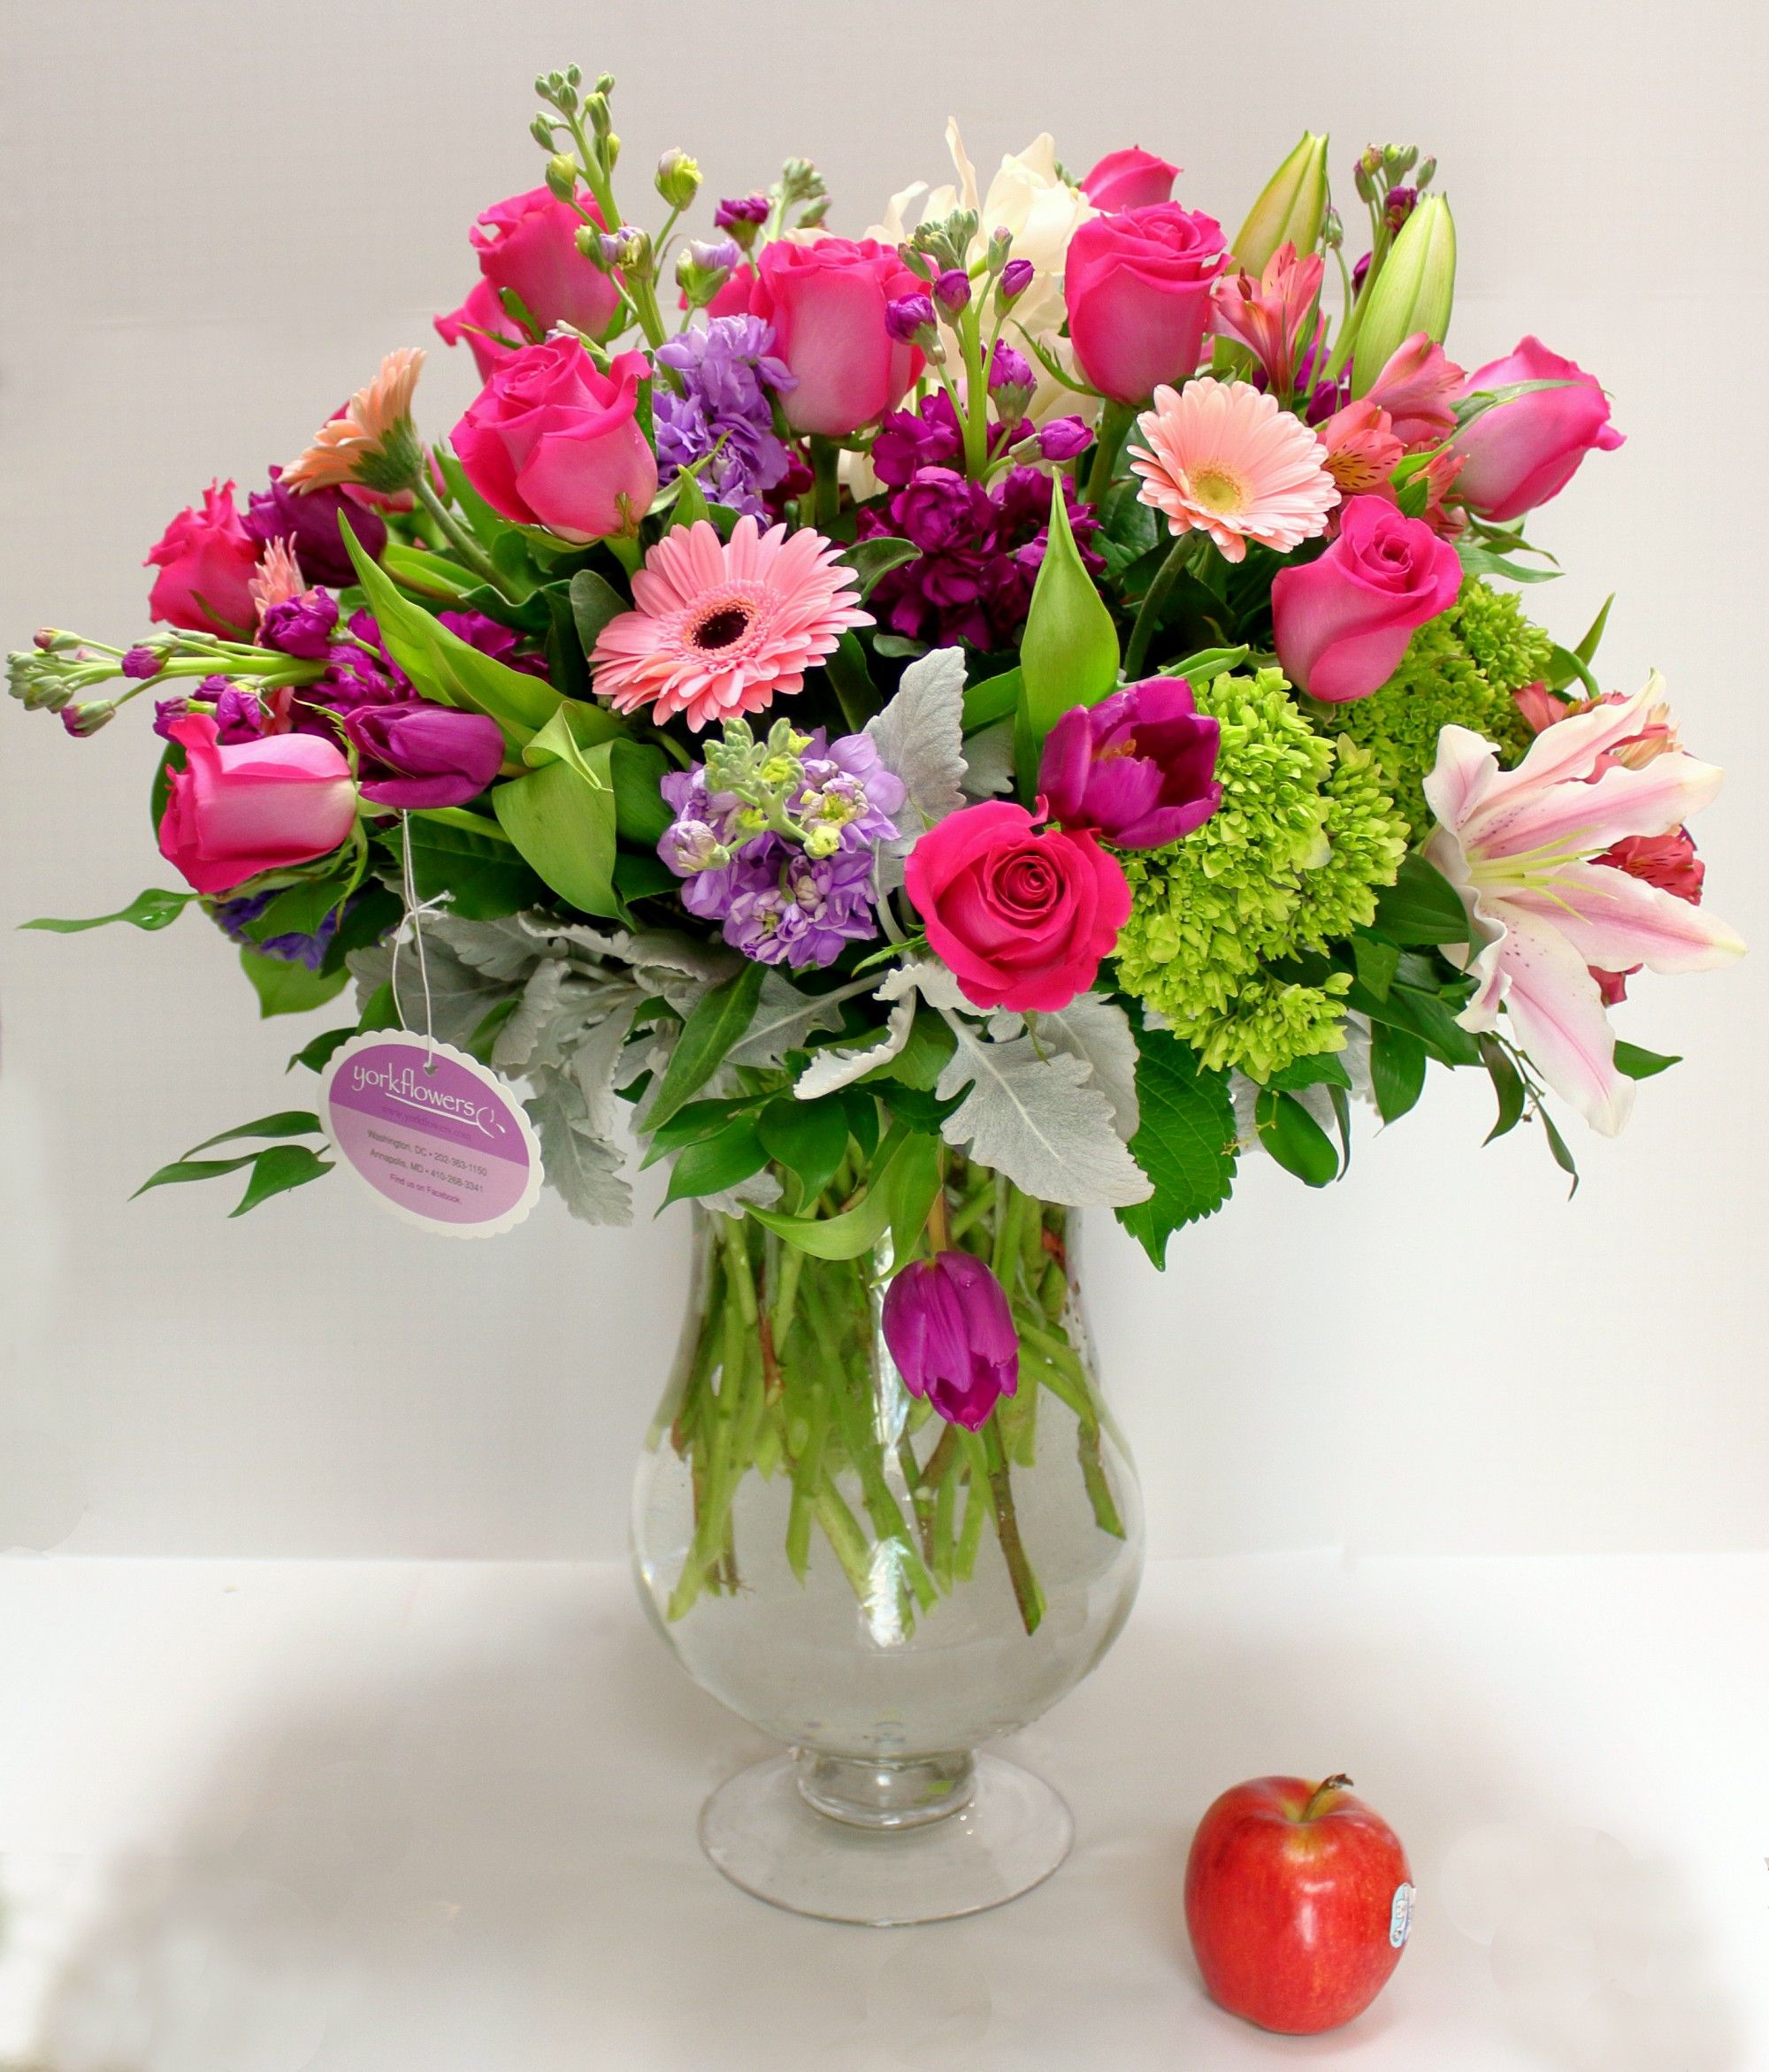 Send Dazzling Bouquet in Washington, DC from York Flowers